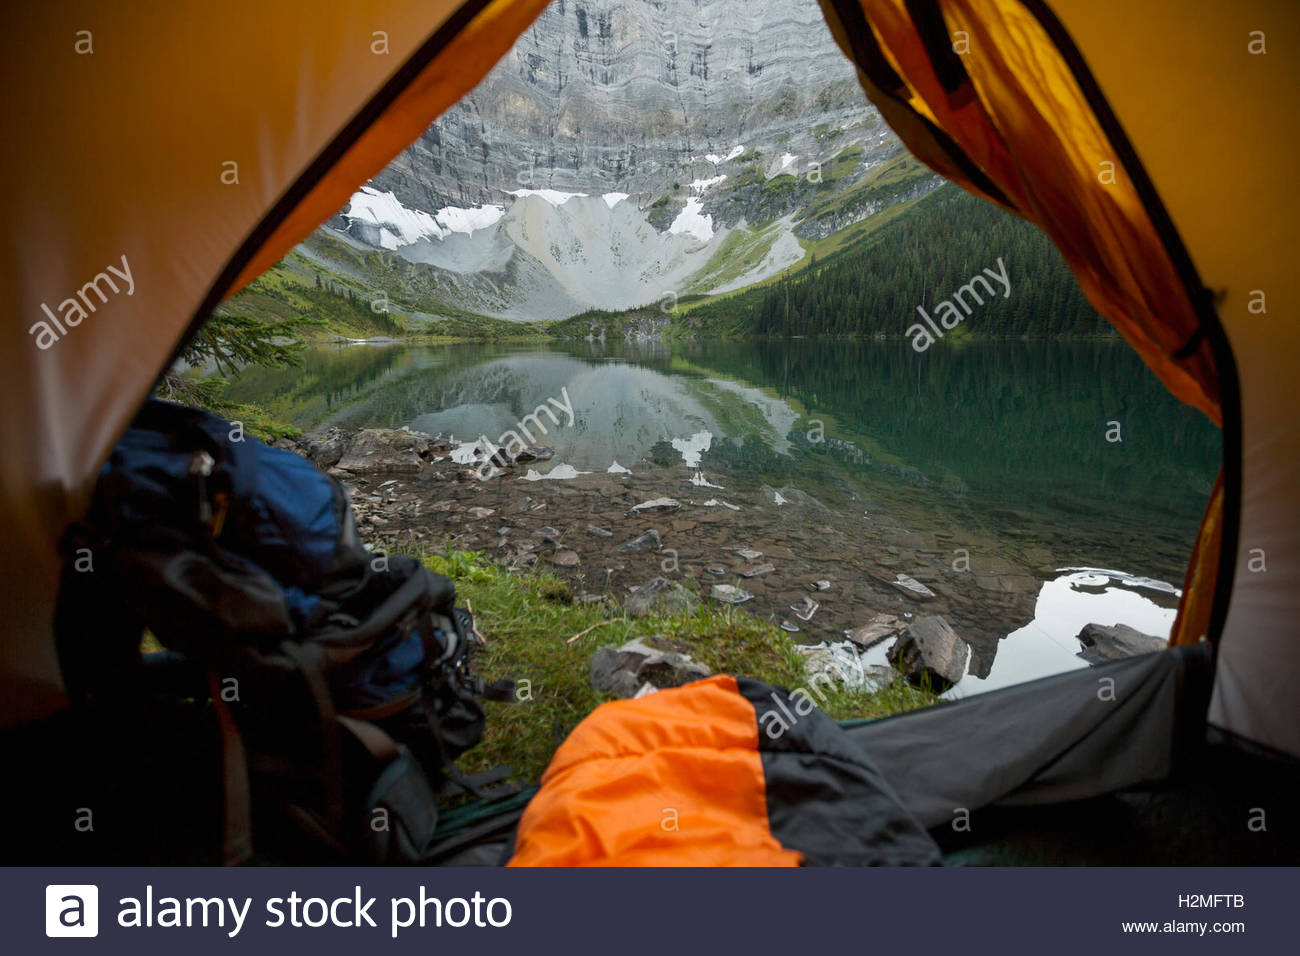 View of mountain and tranquil lake from inside of camping tent - Stock Image